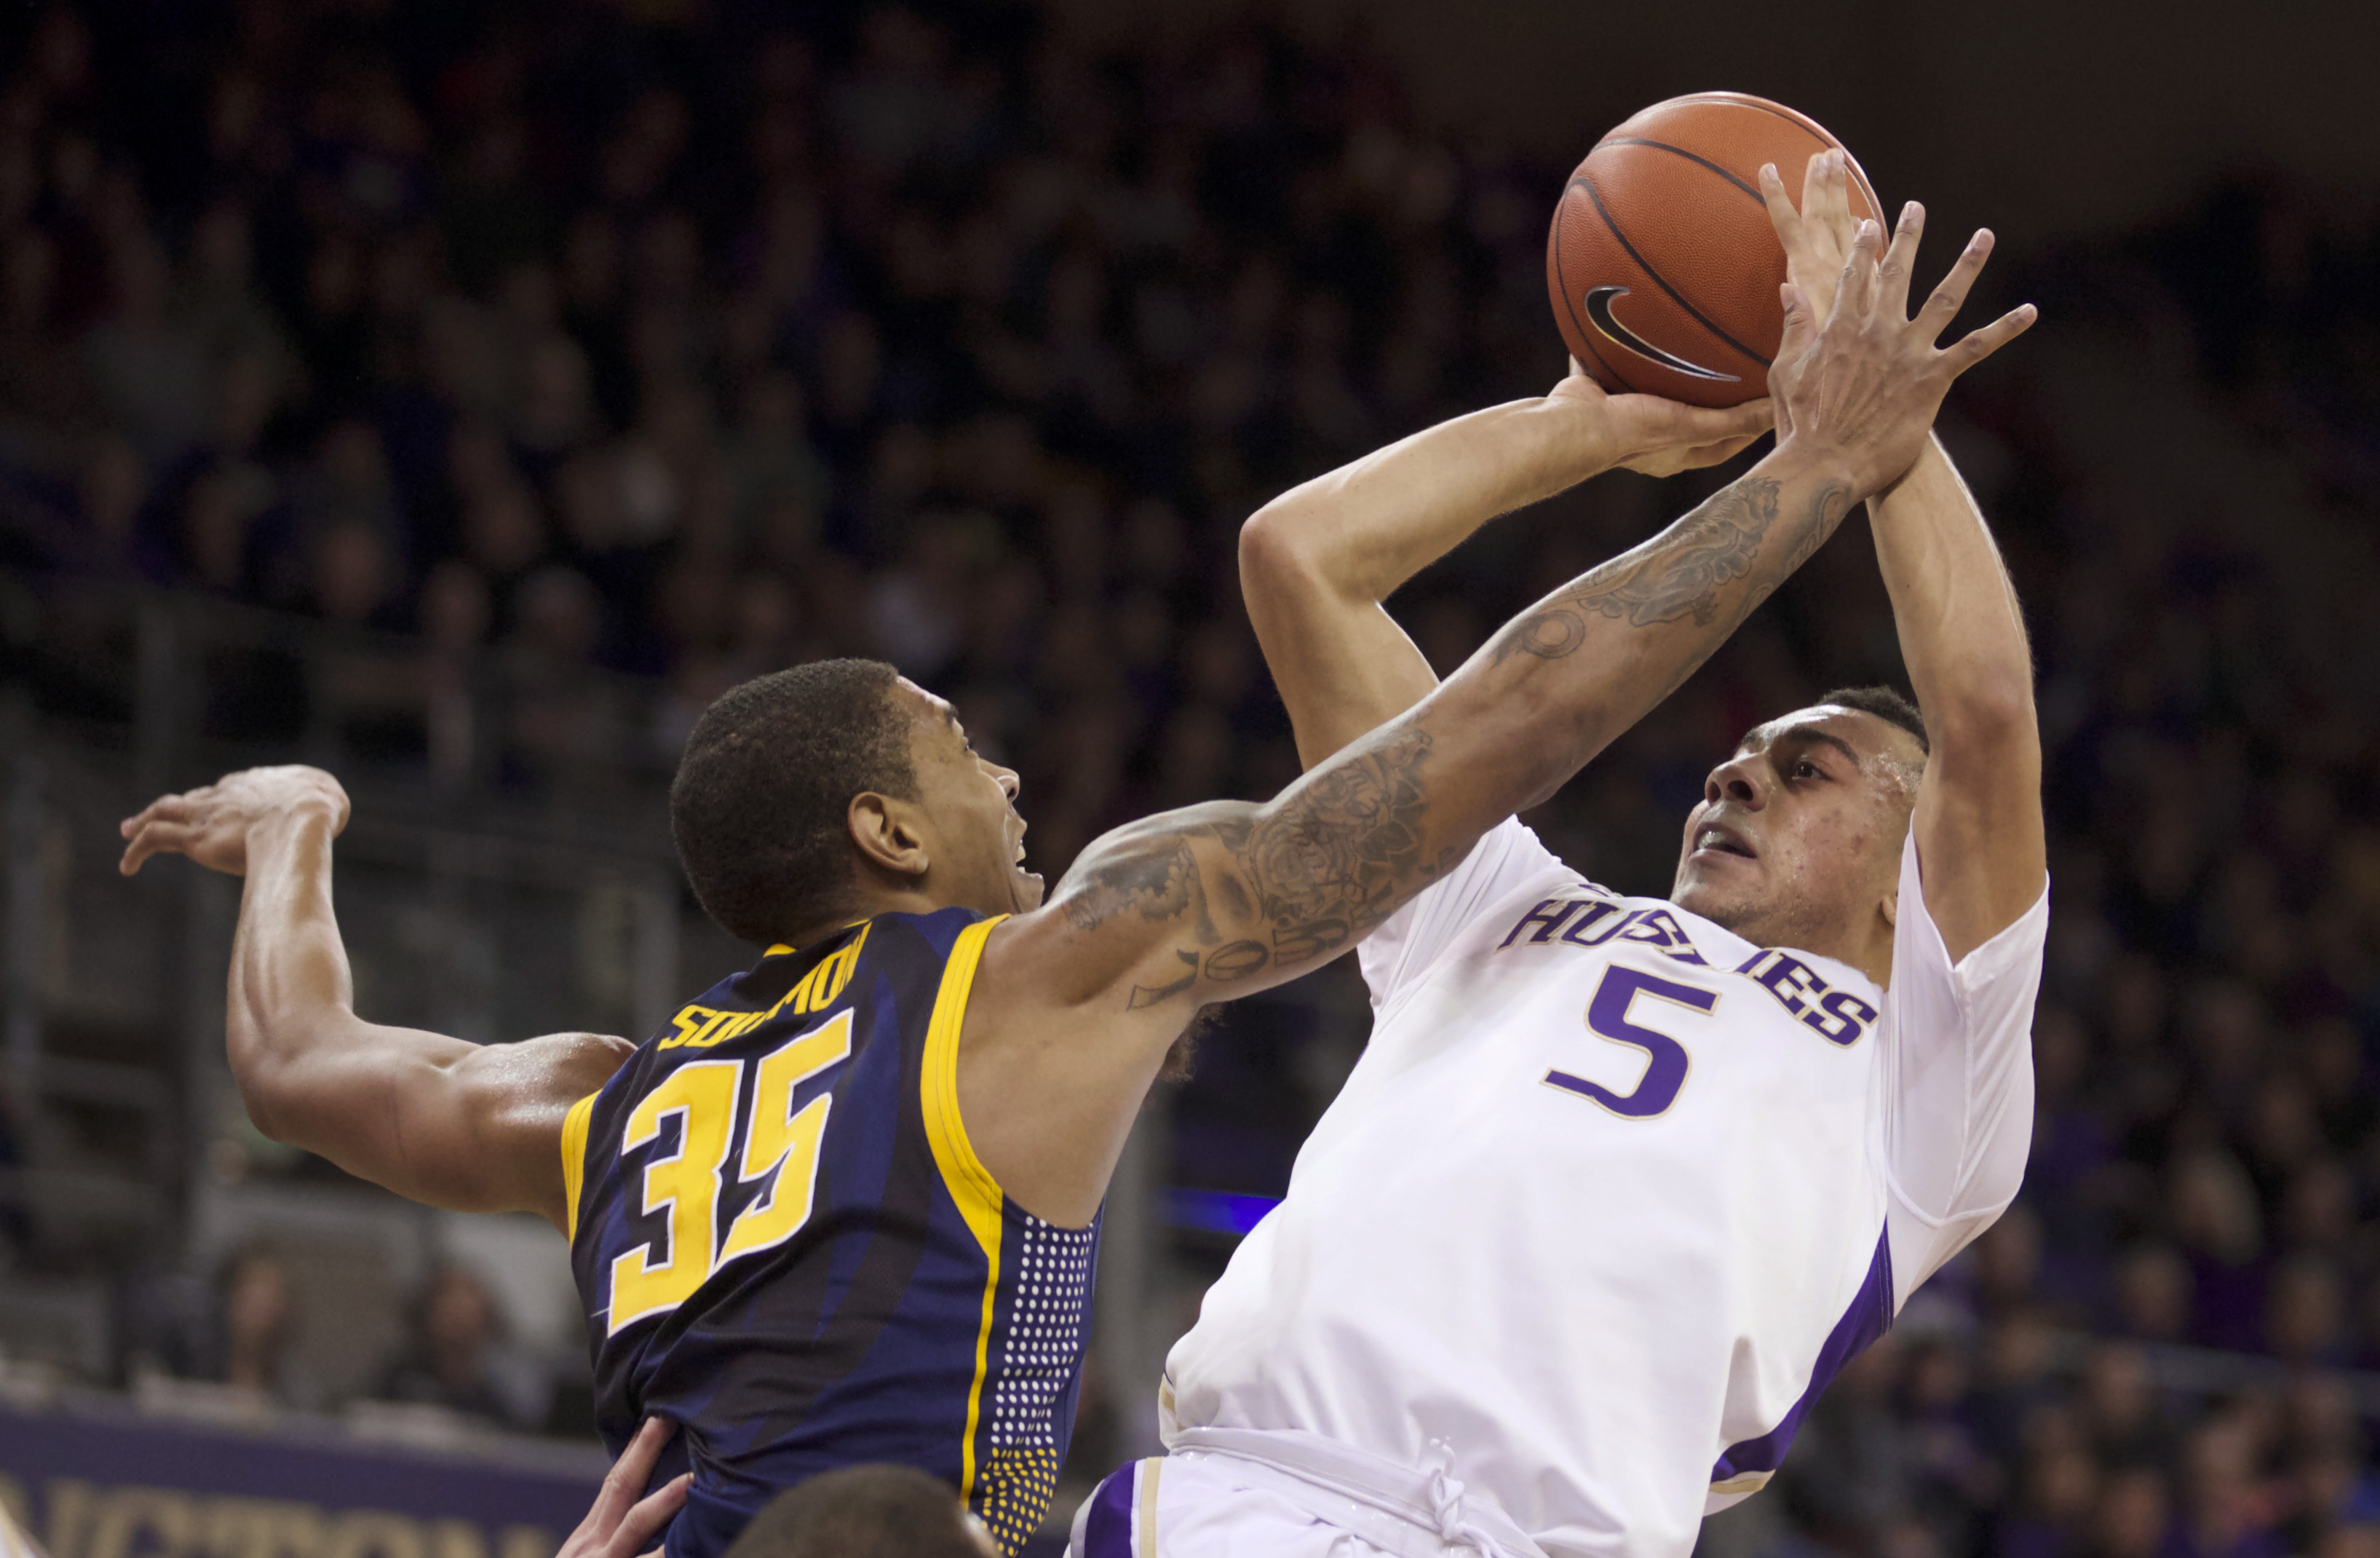 Washington's Nigel Williams-Goss, (5) attempts to shoot over California's Richard Solomon (35) in the first half of an NCAA college basketball game Saturday, Feb. 15, 2014